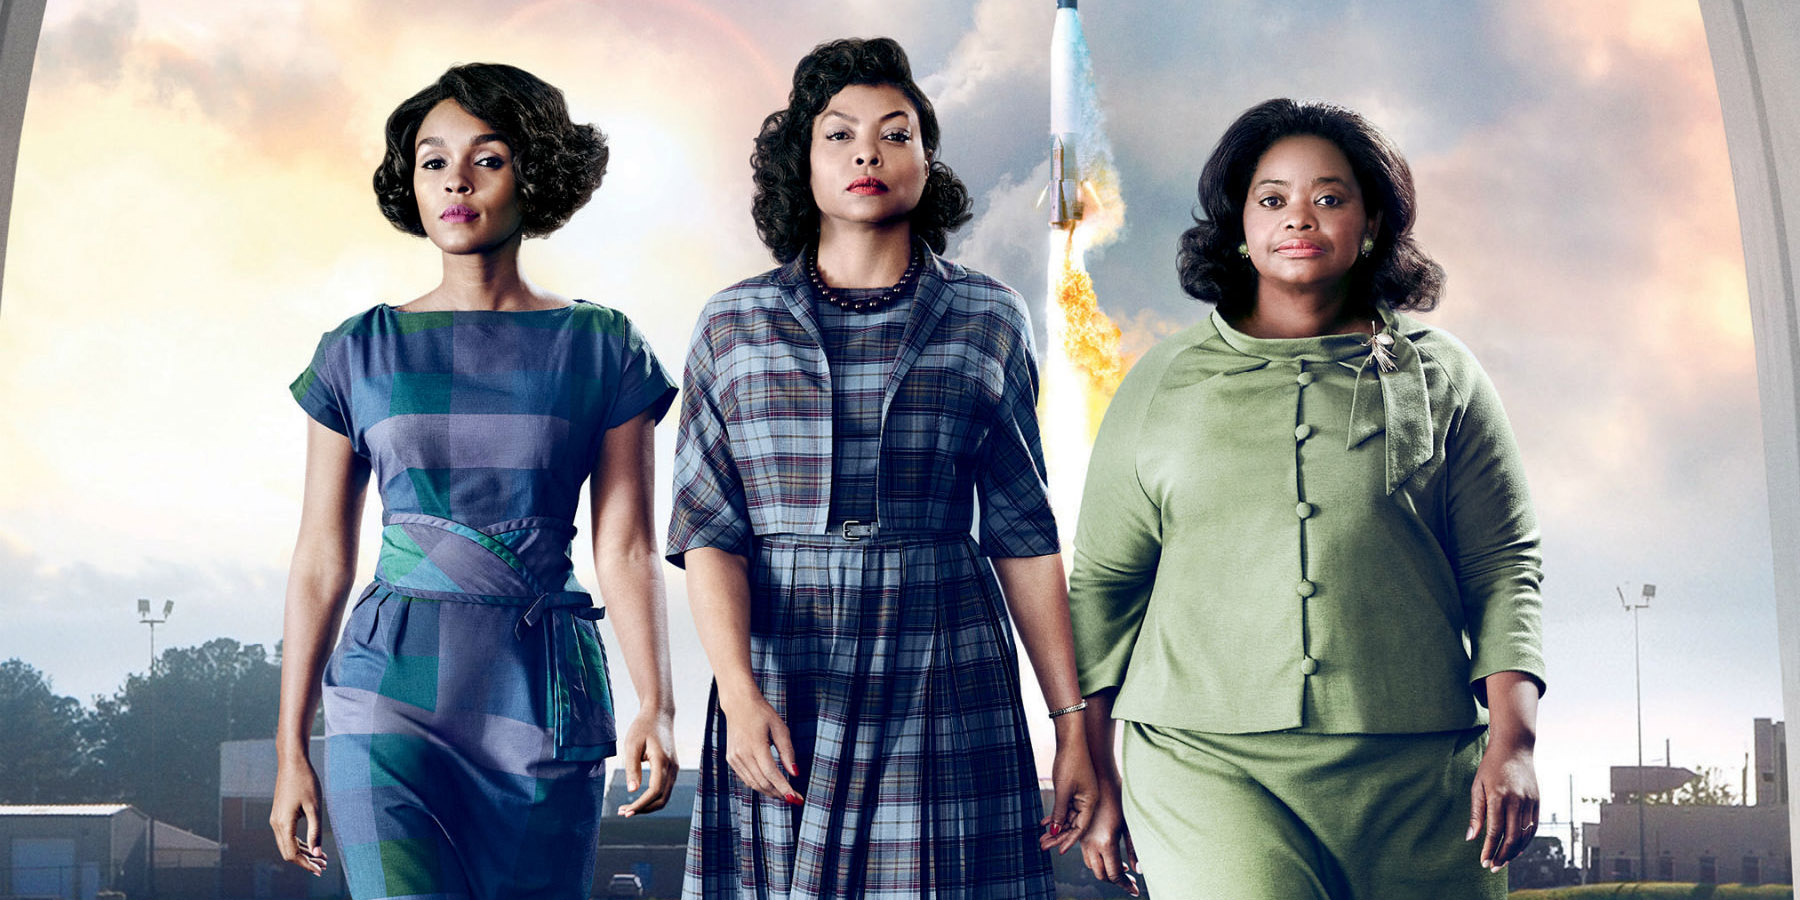 Just some badass black ladies who are smarter and braver than you, no big.